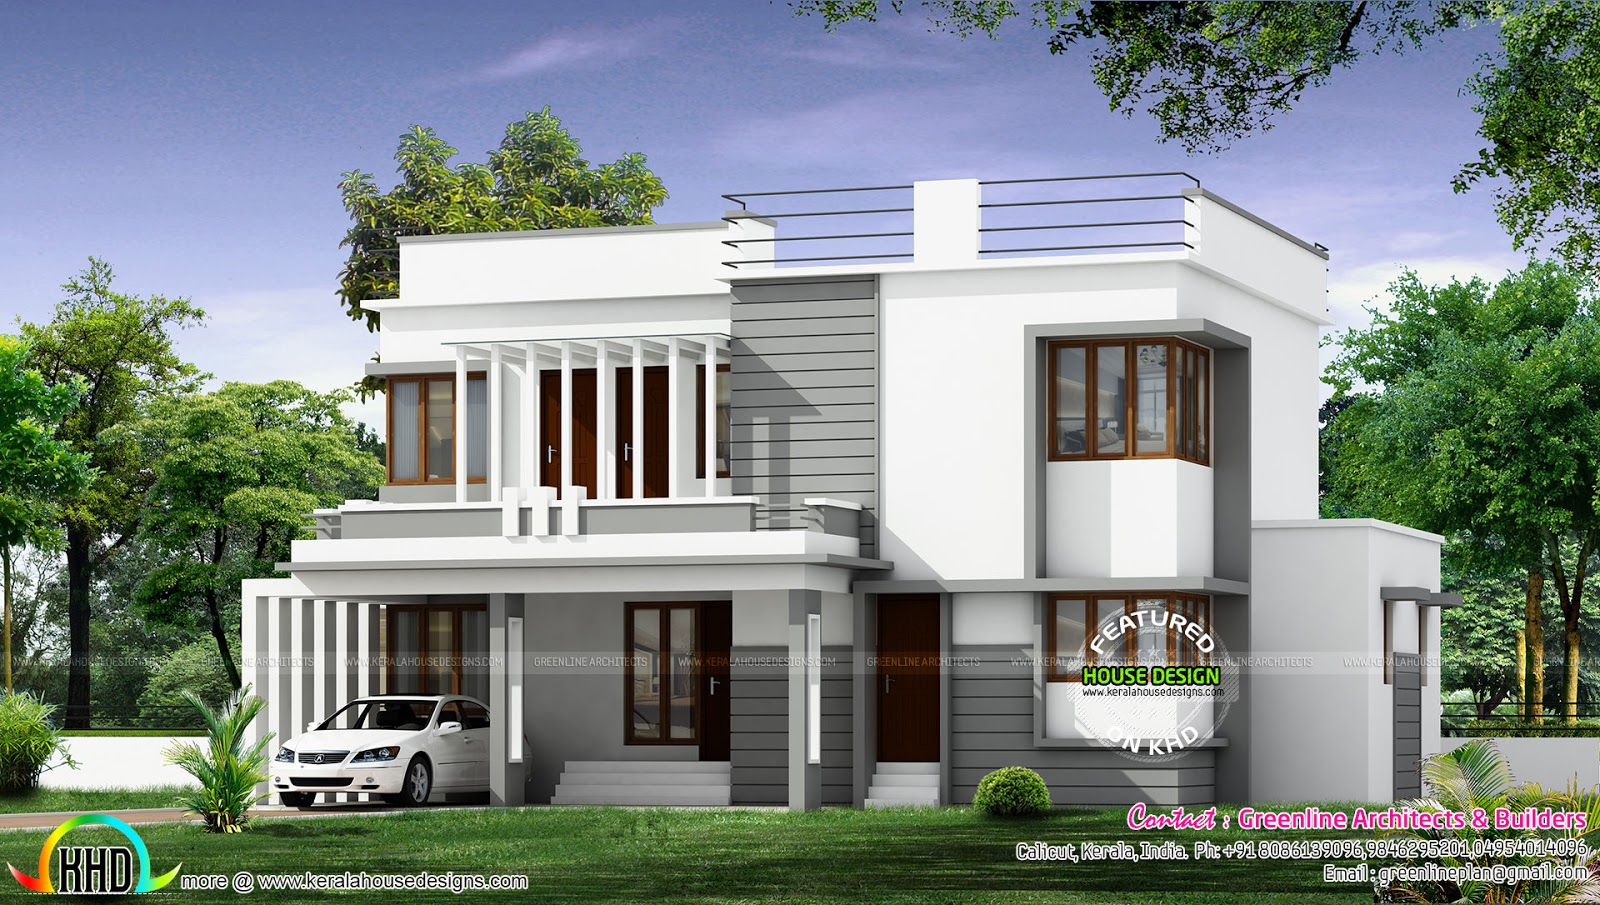 New modern house architecture kerala home design and for New modern style homes